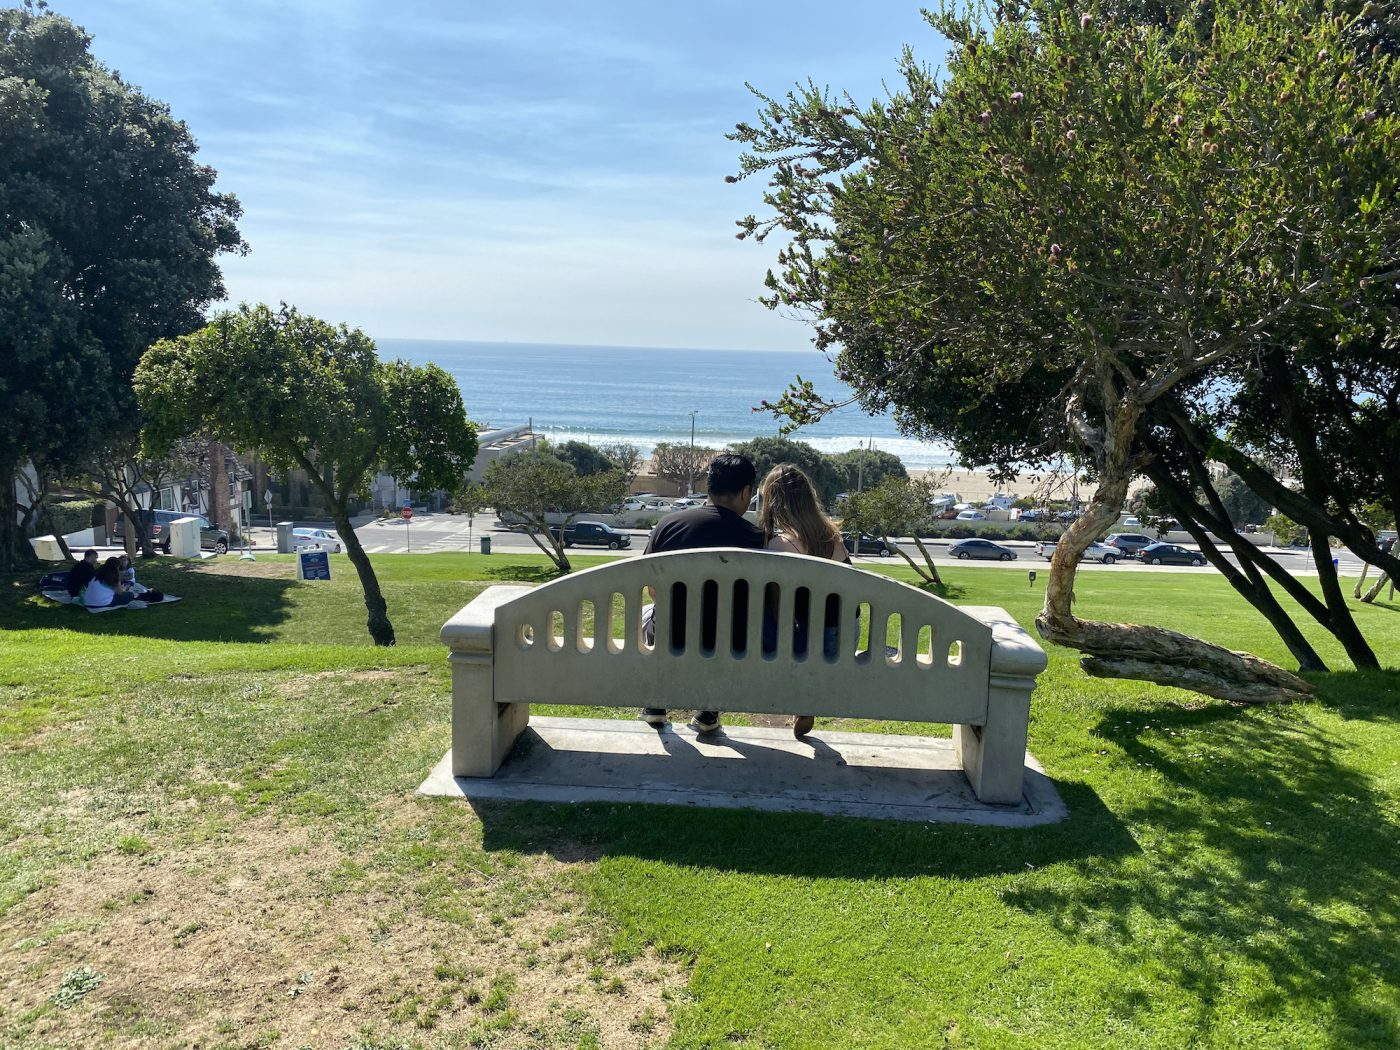 A couple enjoy the afternoon weather and scenery (Brandon I. Brooks/L.A. Sentinel)